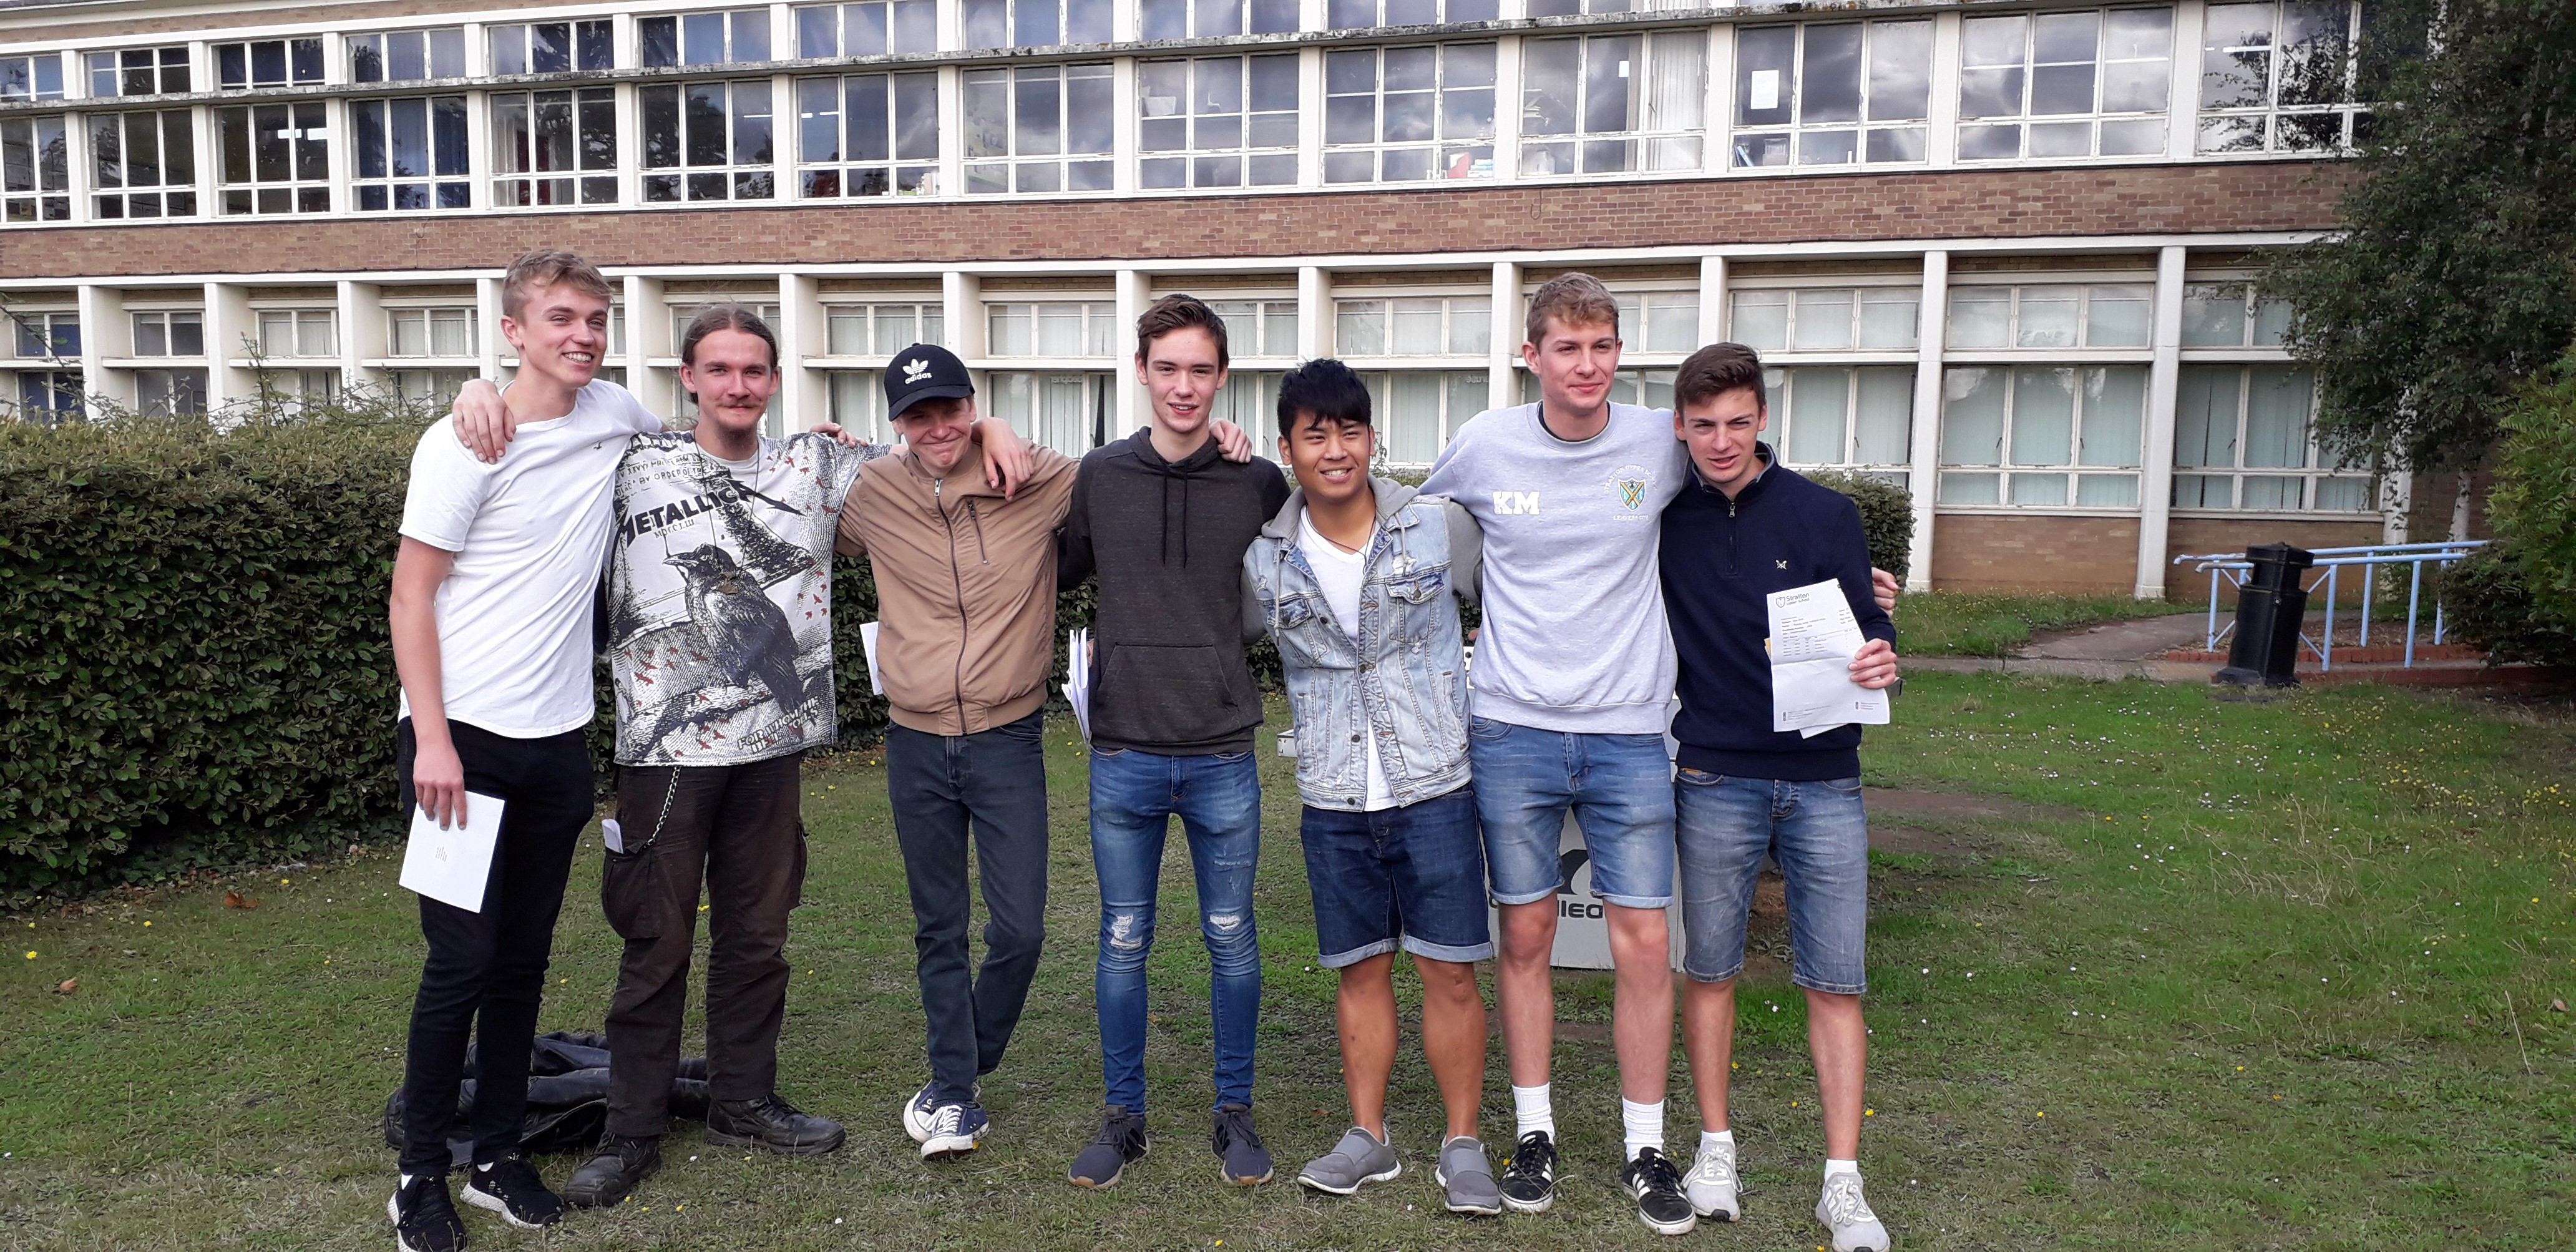 Stratton Upper School celebrates another year of A level success